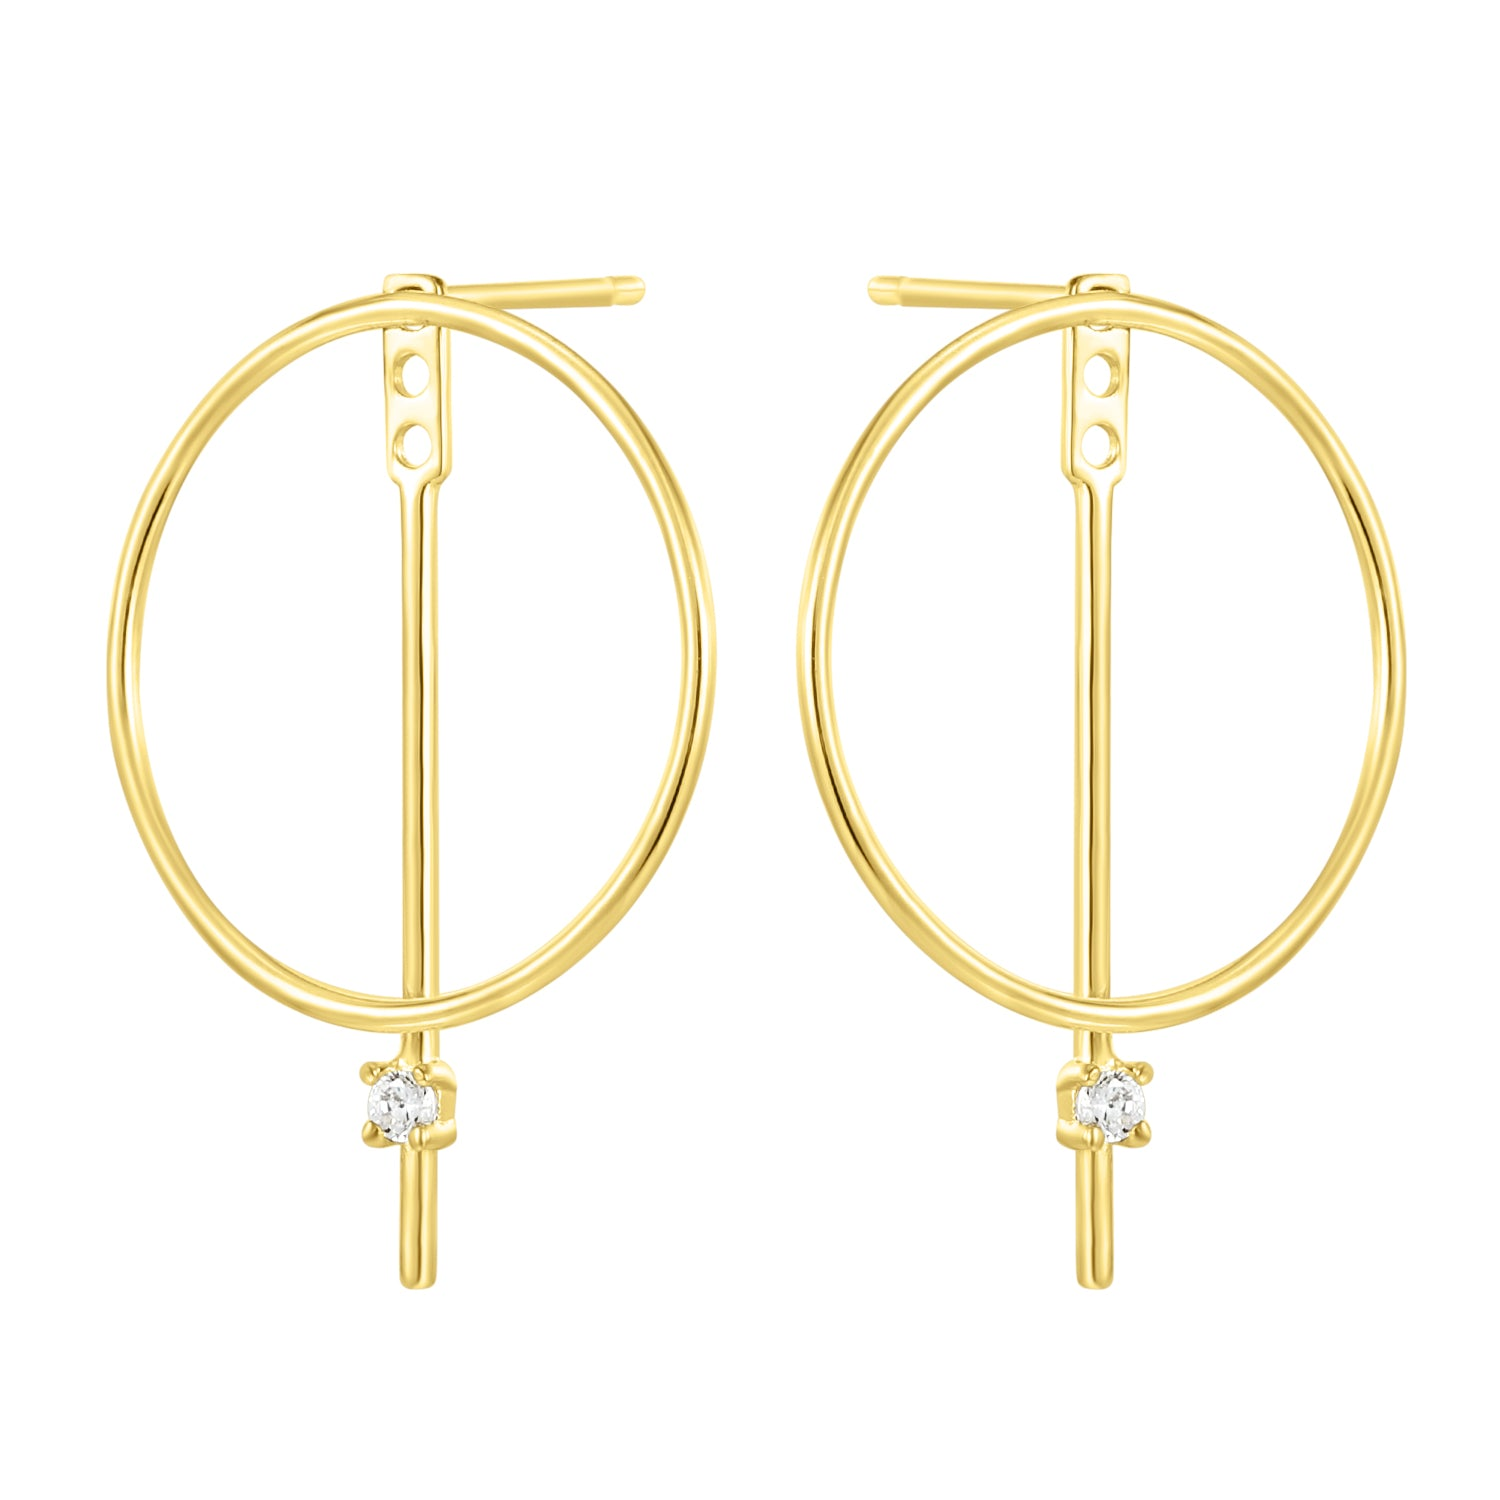 Fortuna| Helio Earrings | 925 Silver | White CZ | 14K Gold Plated